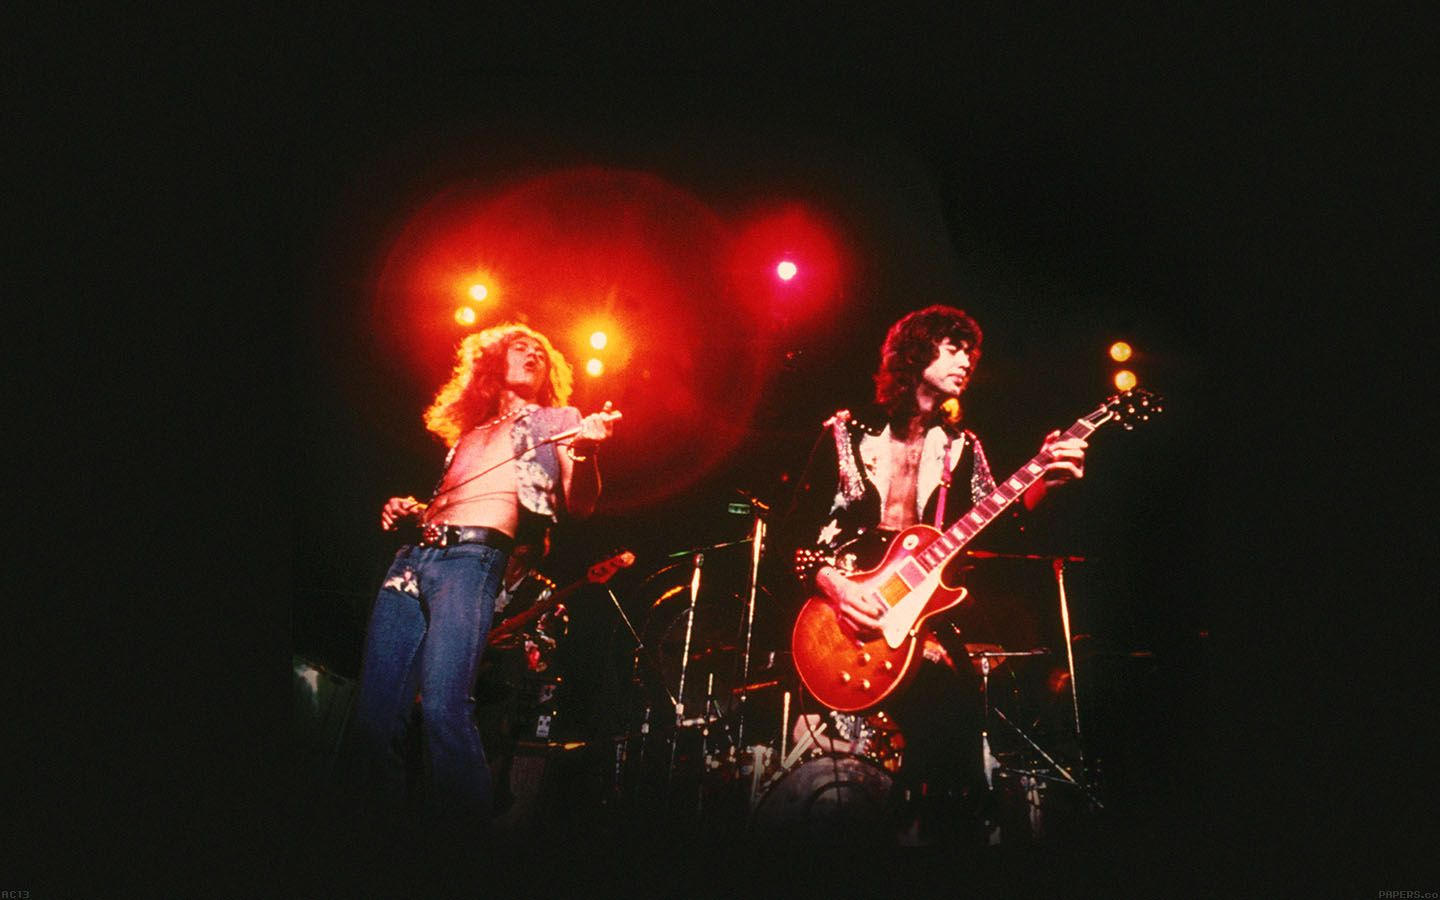 8 Great Led Zeppelin Wallpapers Picture For Your Pc Desktop Or Mac Wallpapers View And Download In Led Zeppelin Wallpaper Snowman Wallpaper Wallpaper Pictures